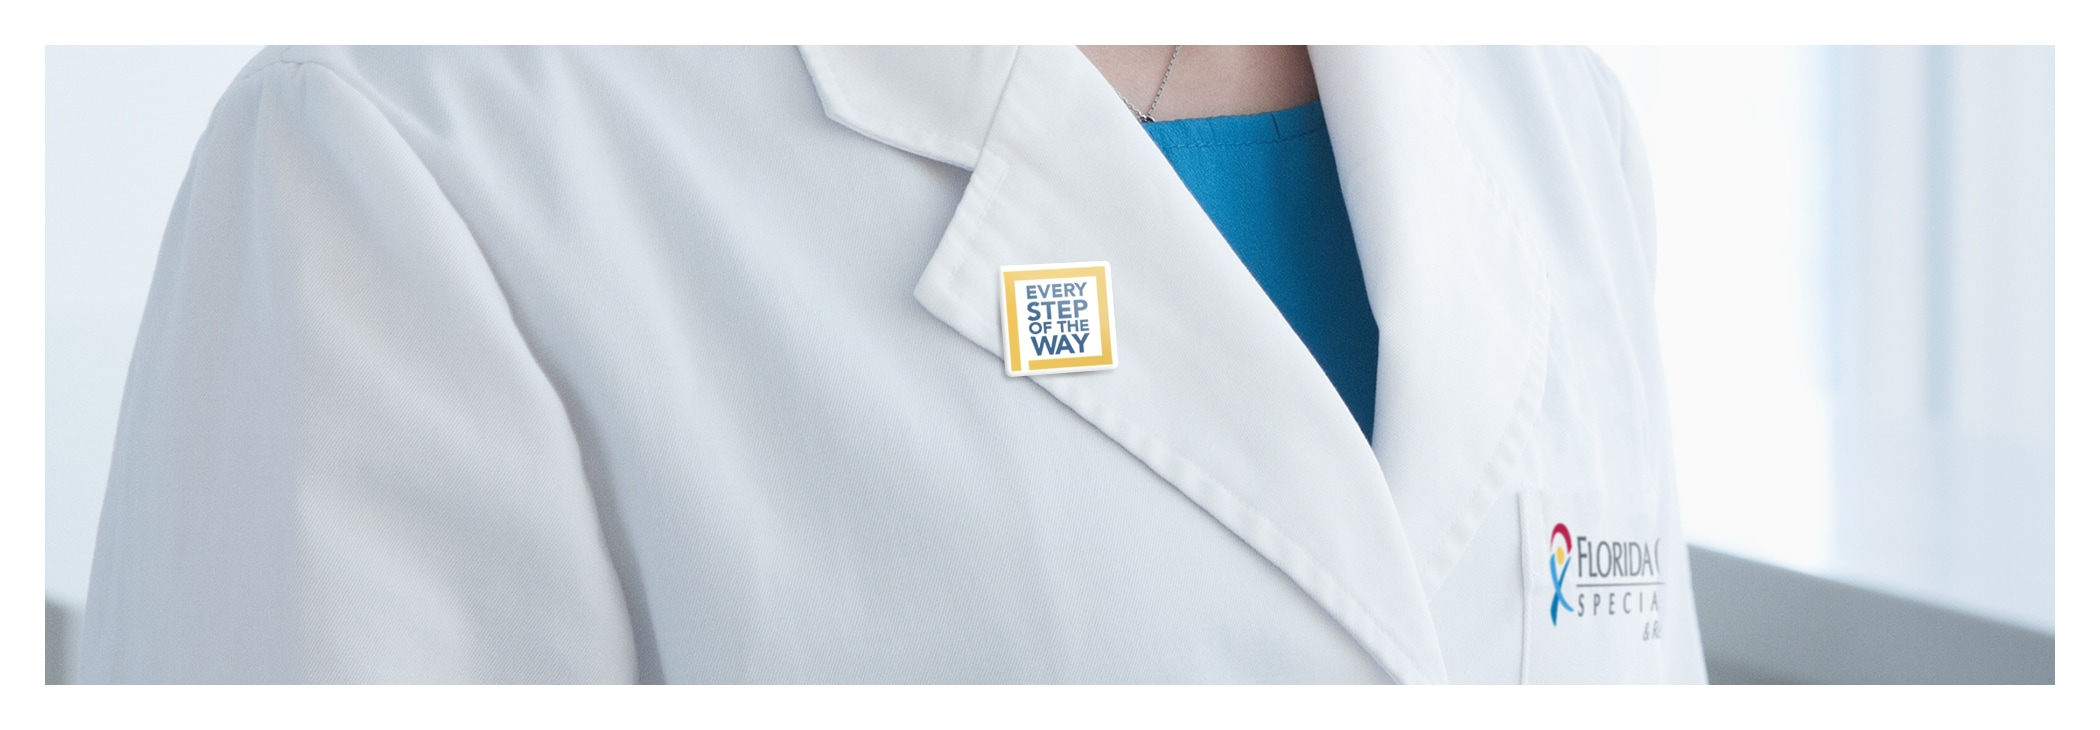 Photo of a physician wearing an Every Step of the Way lapel pin